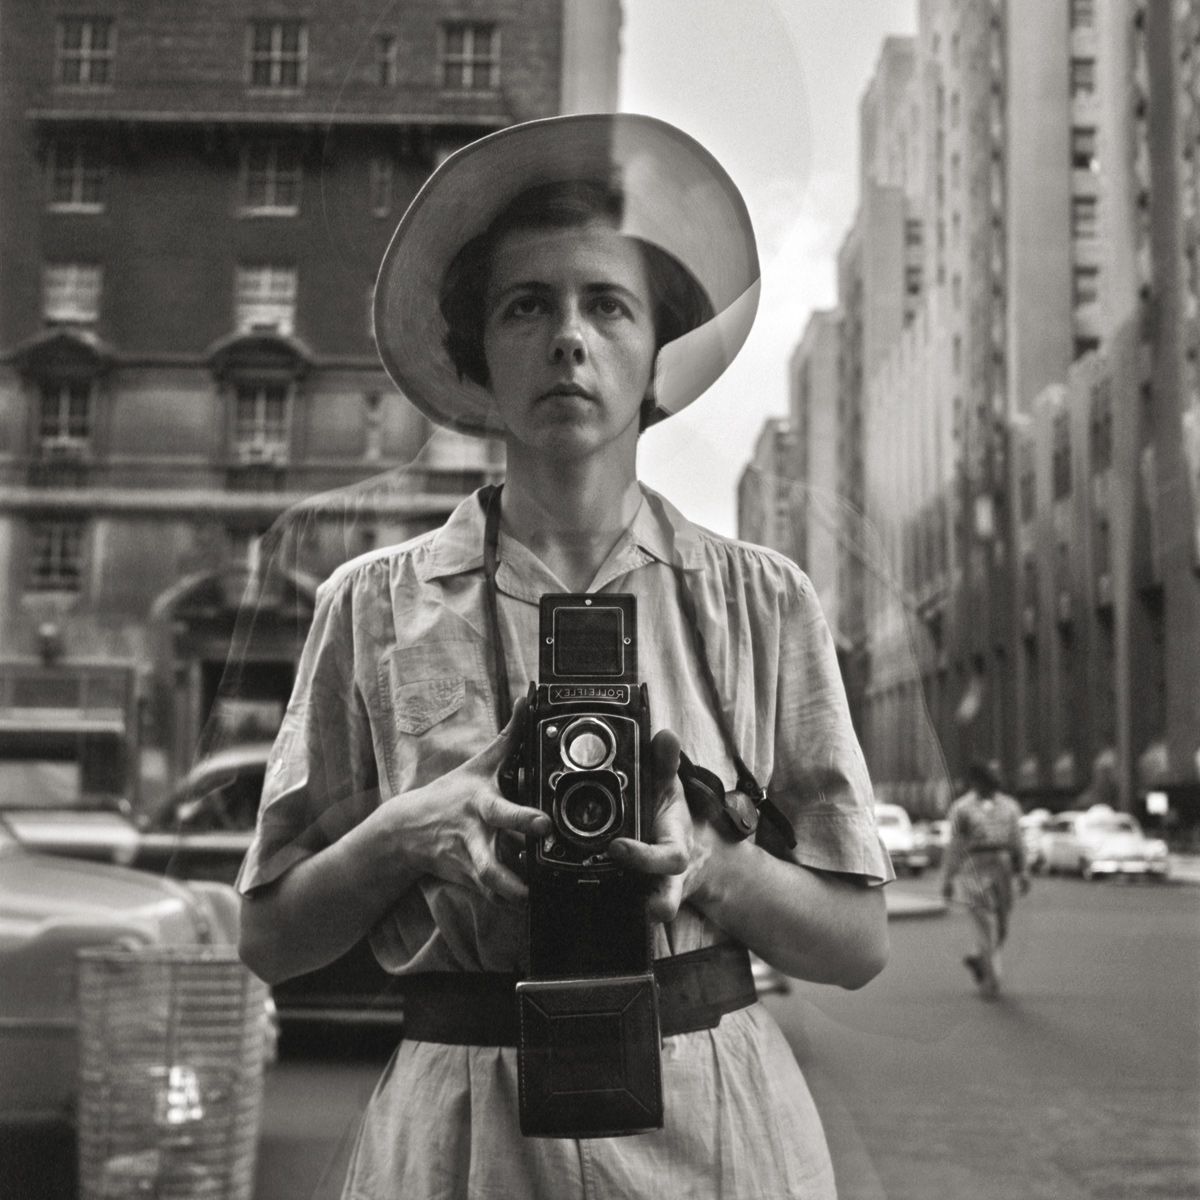 © Vivian Maier/Maloof Collection